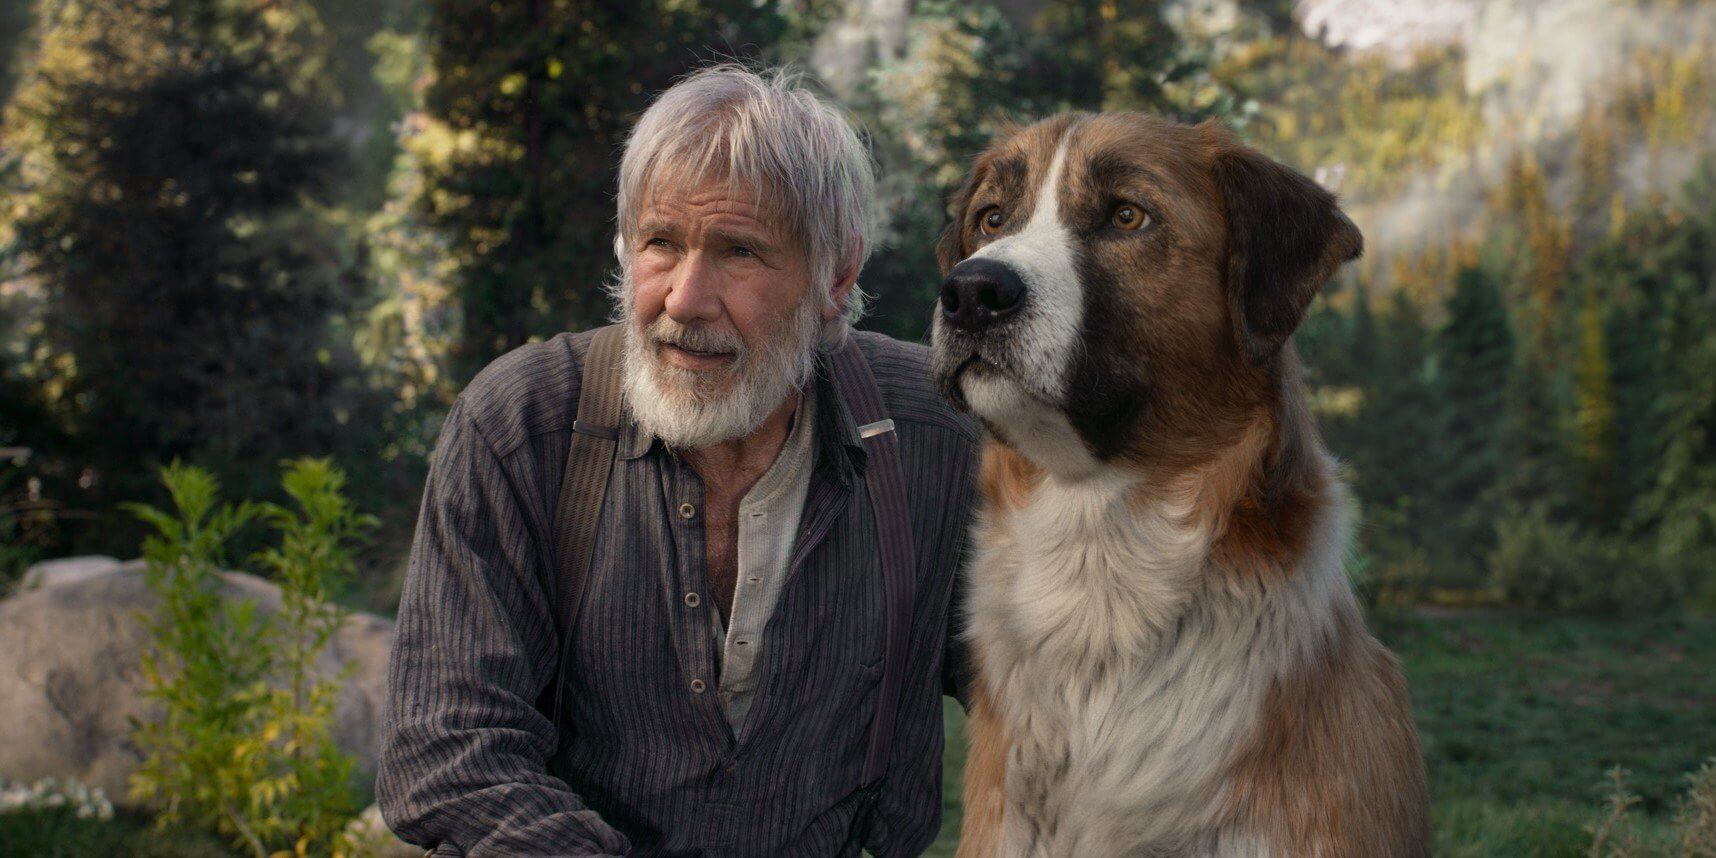 Actor Harrison Ford and his canine pal in The Call of the Wild